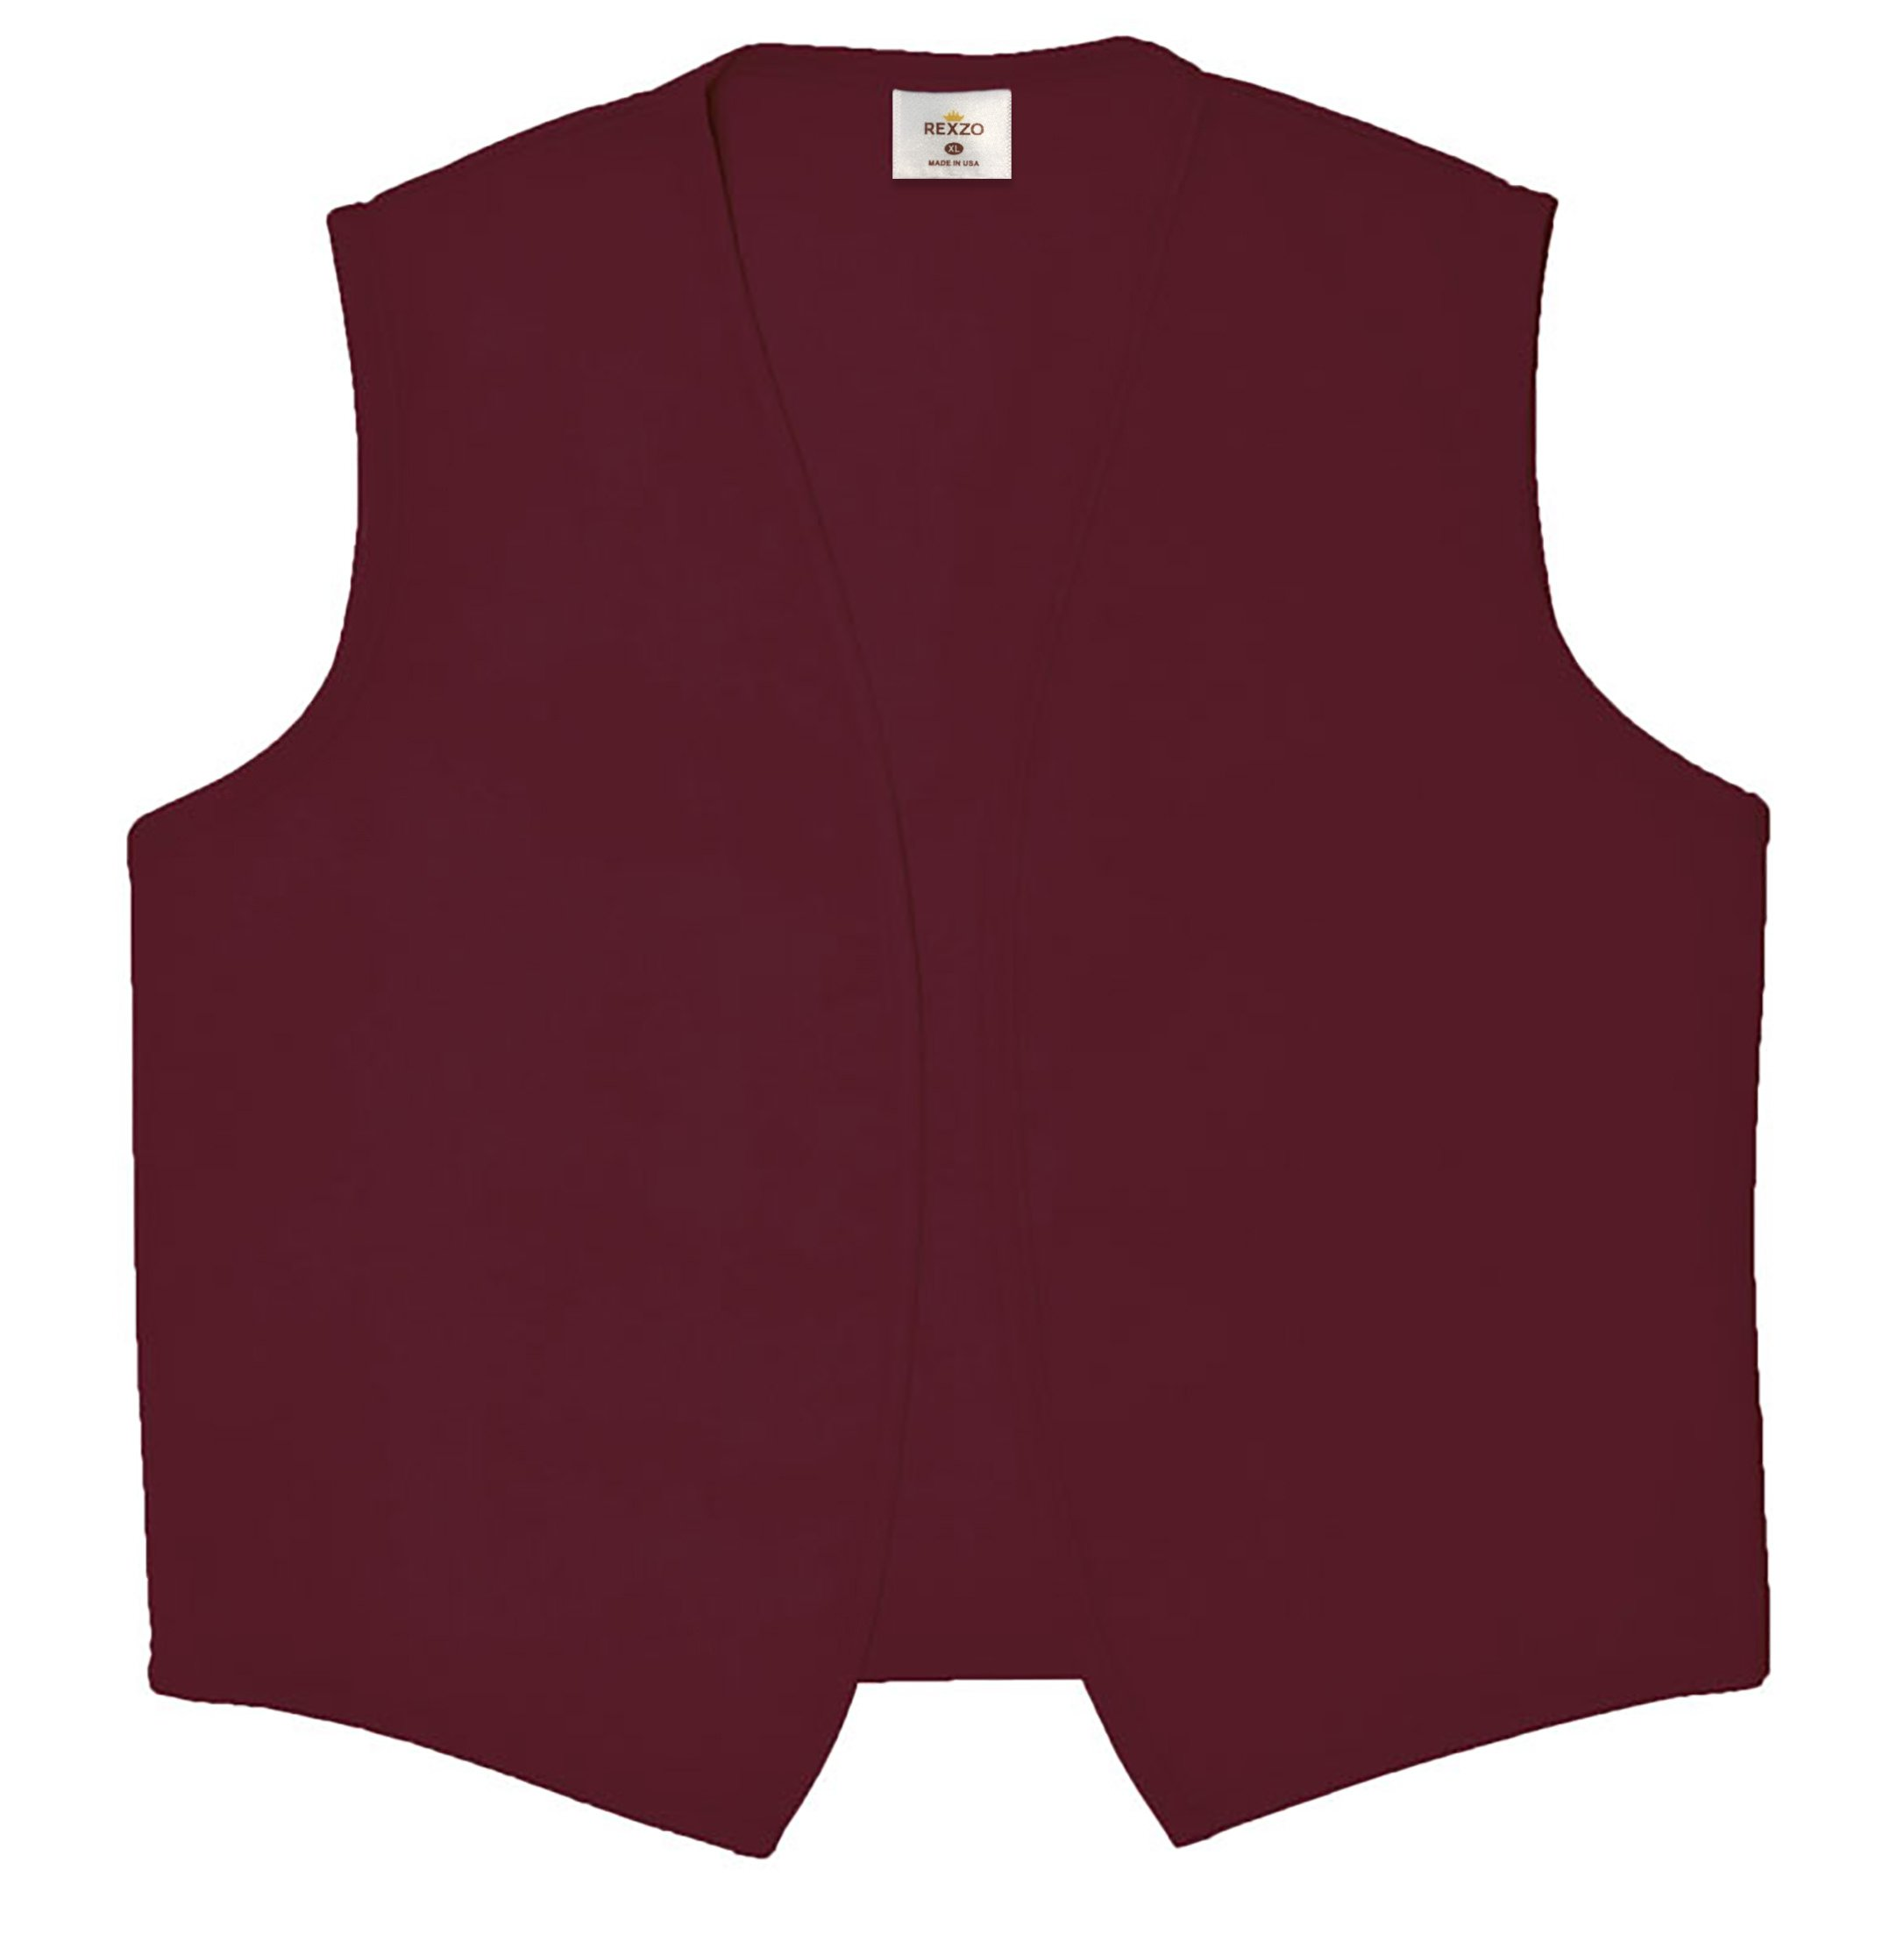 REXZO Unisex Vest No Pocket No Buttons– Made in The USA - Maroon, Medium